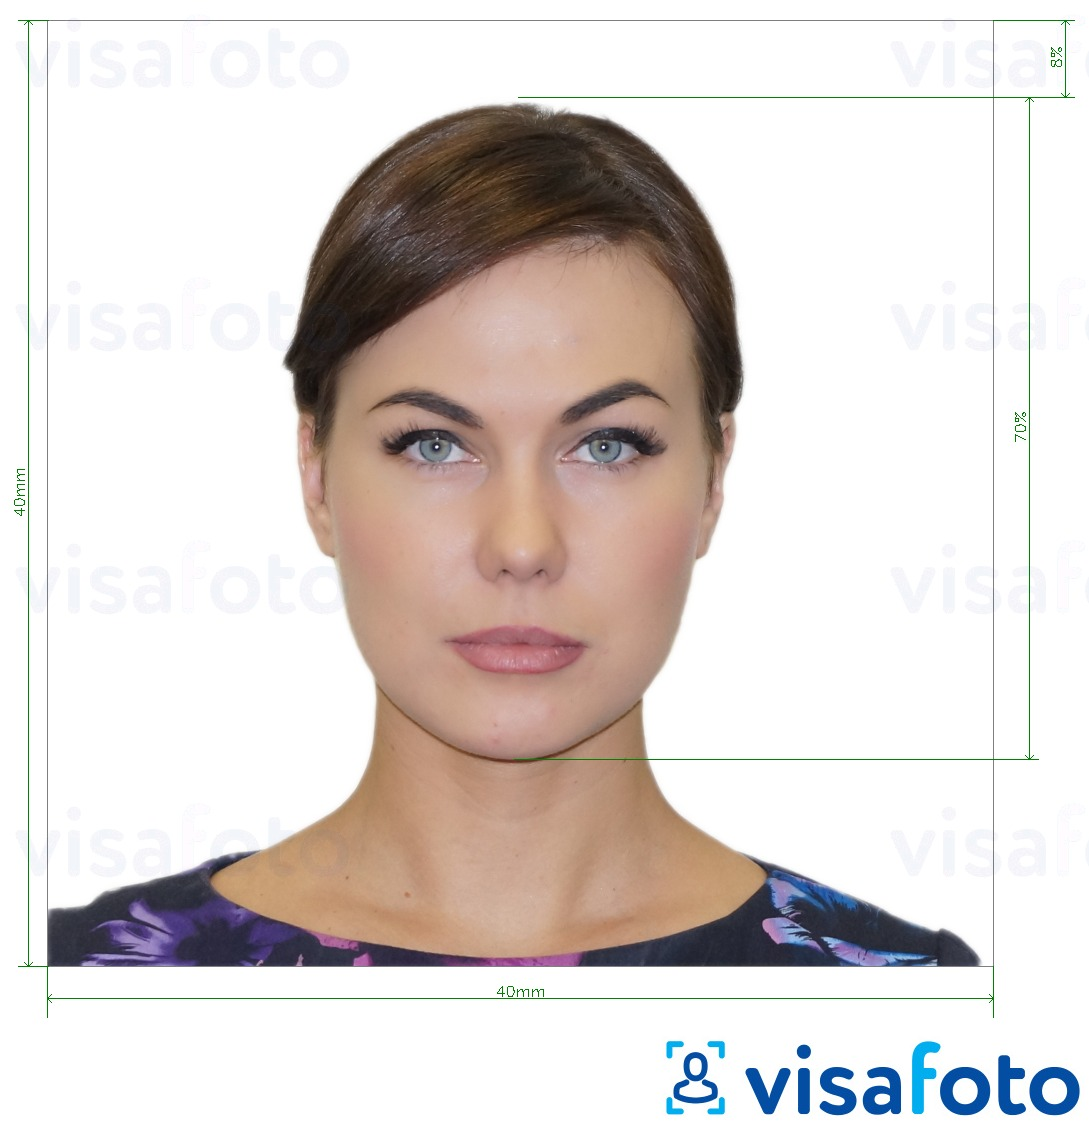 Example of photo for Argentina passport 4x4 cm (40x40 mm) with exact size specification